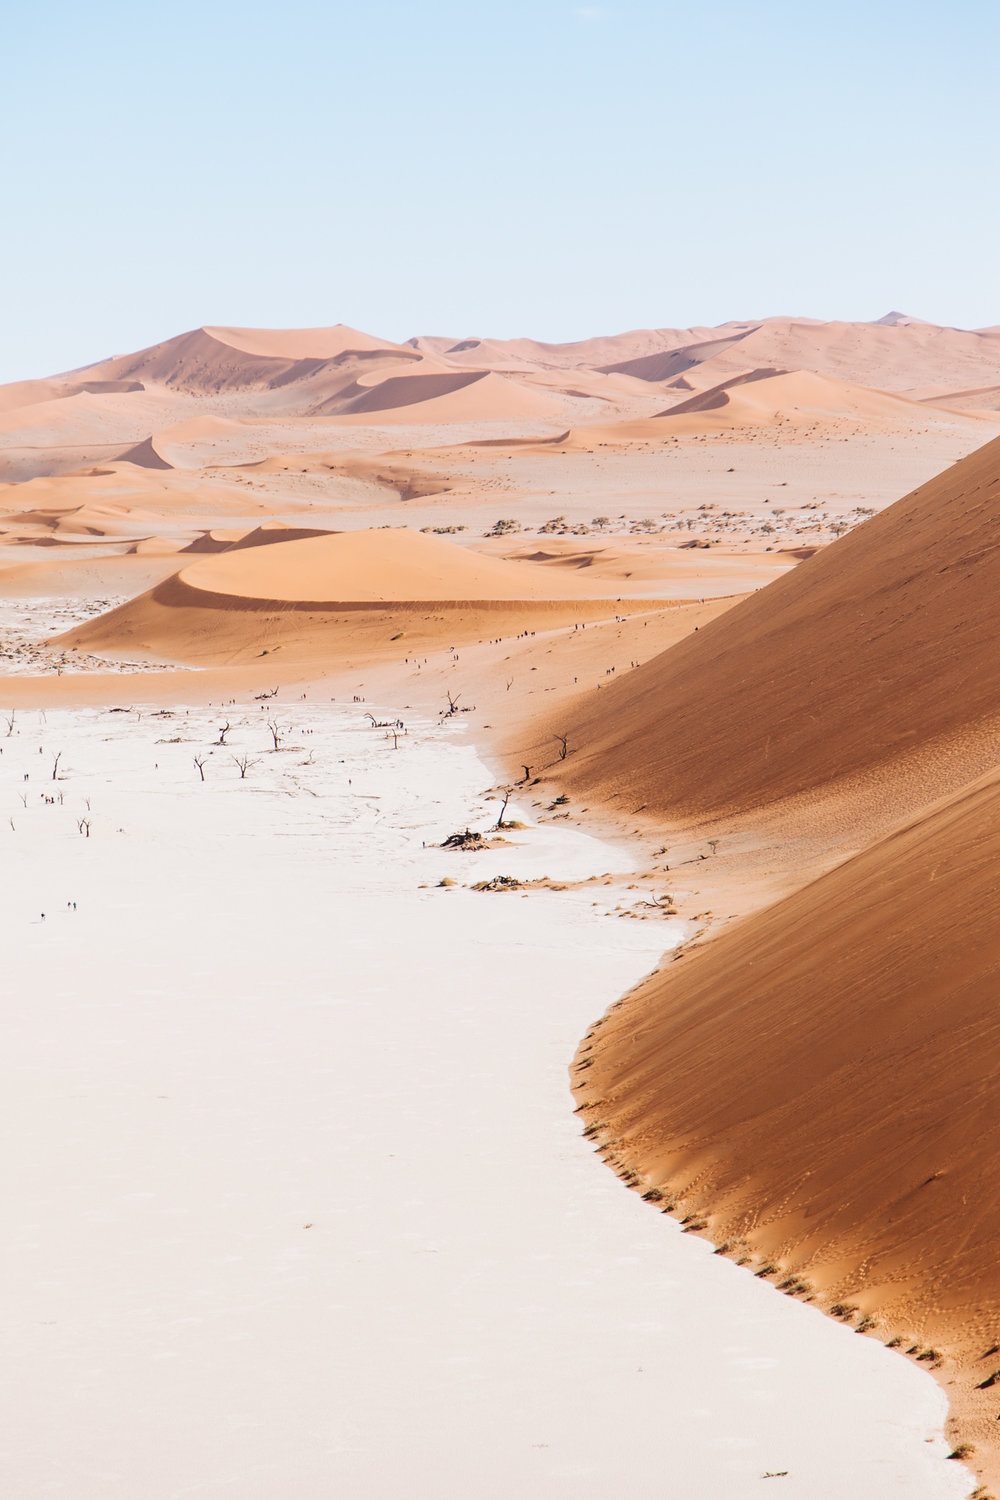 The Tsauchab River used to drain into here, nourishing desert life and even trees. But no longer. Some 900 years ago the climate dried up, and the dunes cut Dead Vlei off from the river.